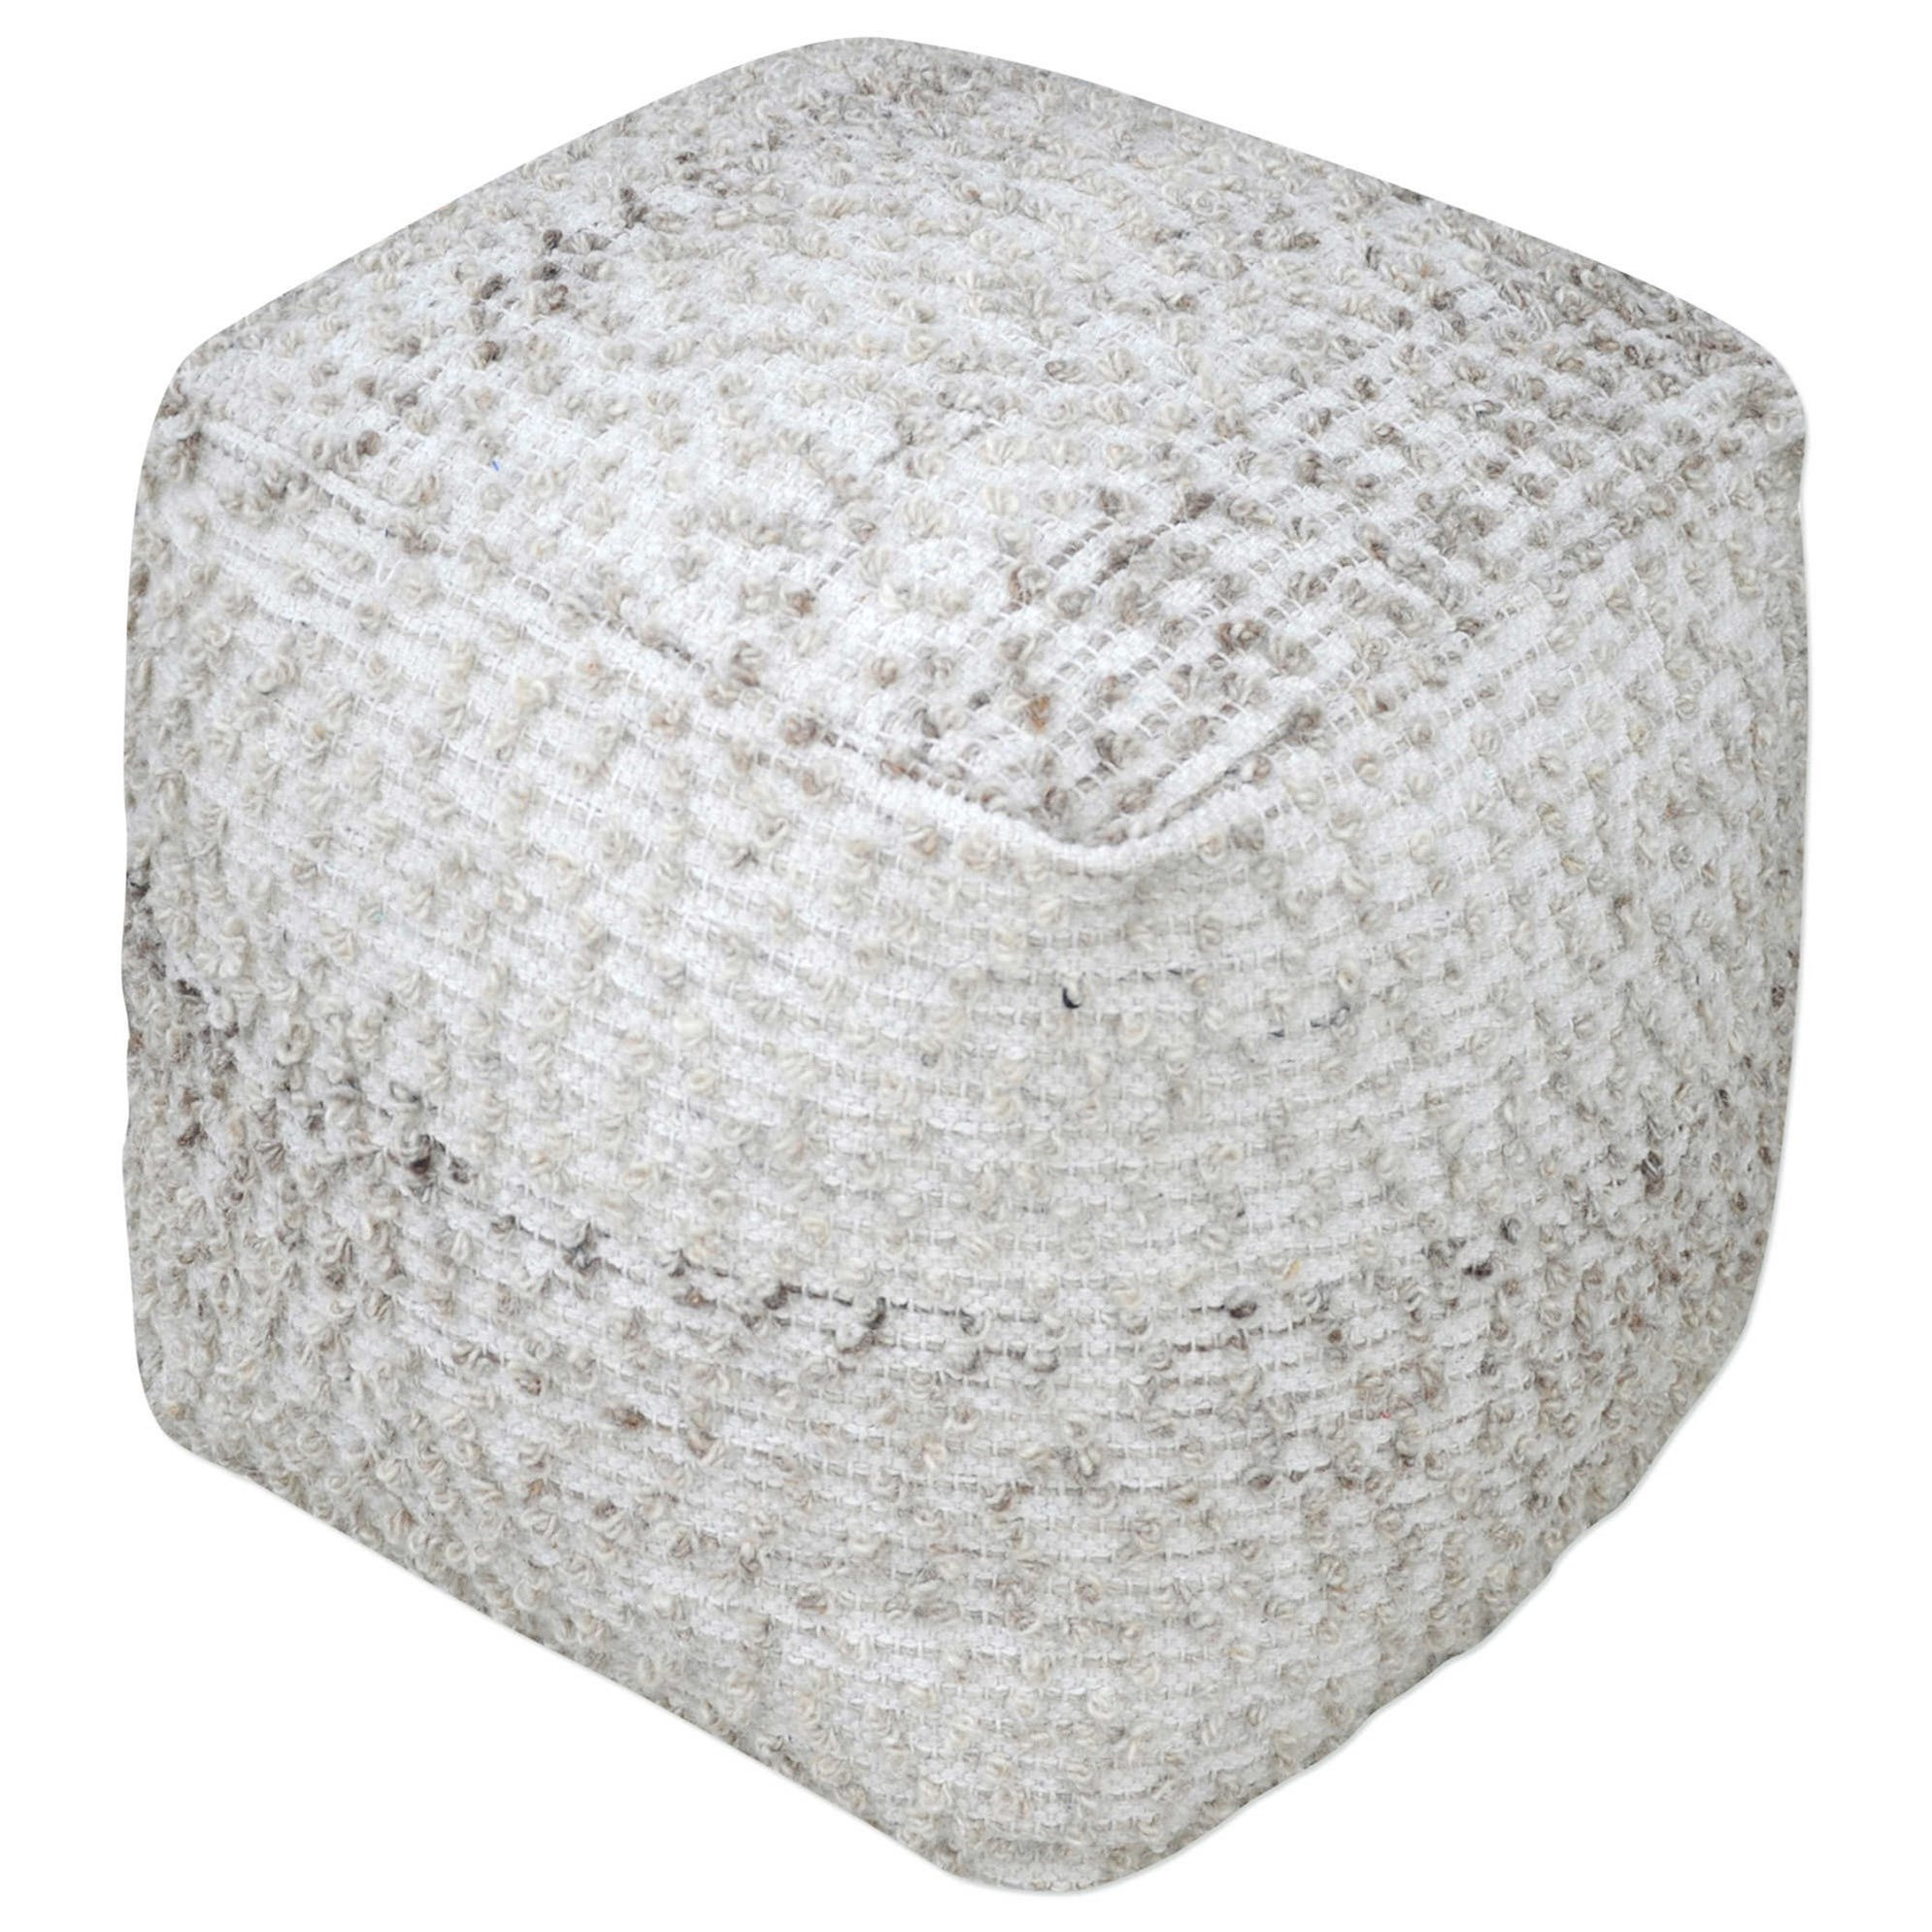 Accent Furniture - Ottomans Valda Gray Wool Pouf by Uttermost at O'Dunk & O'Bright Furniture